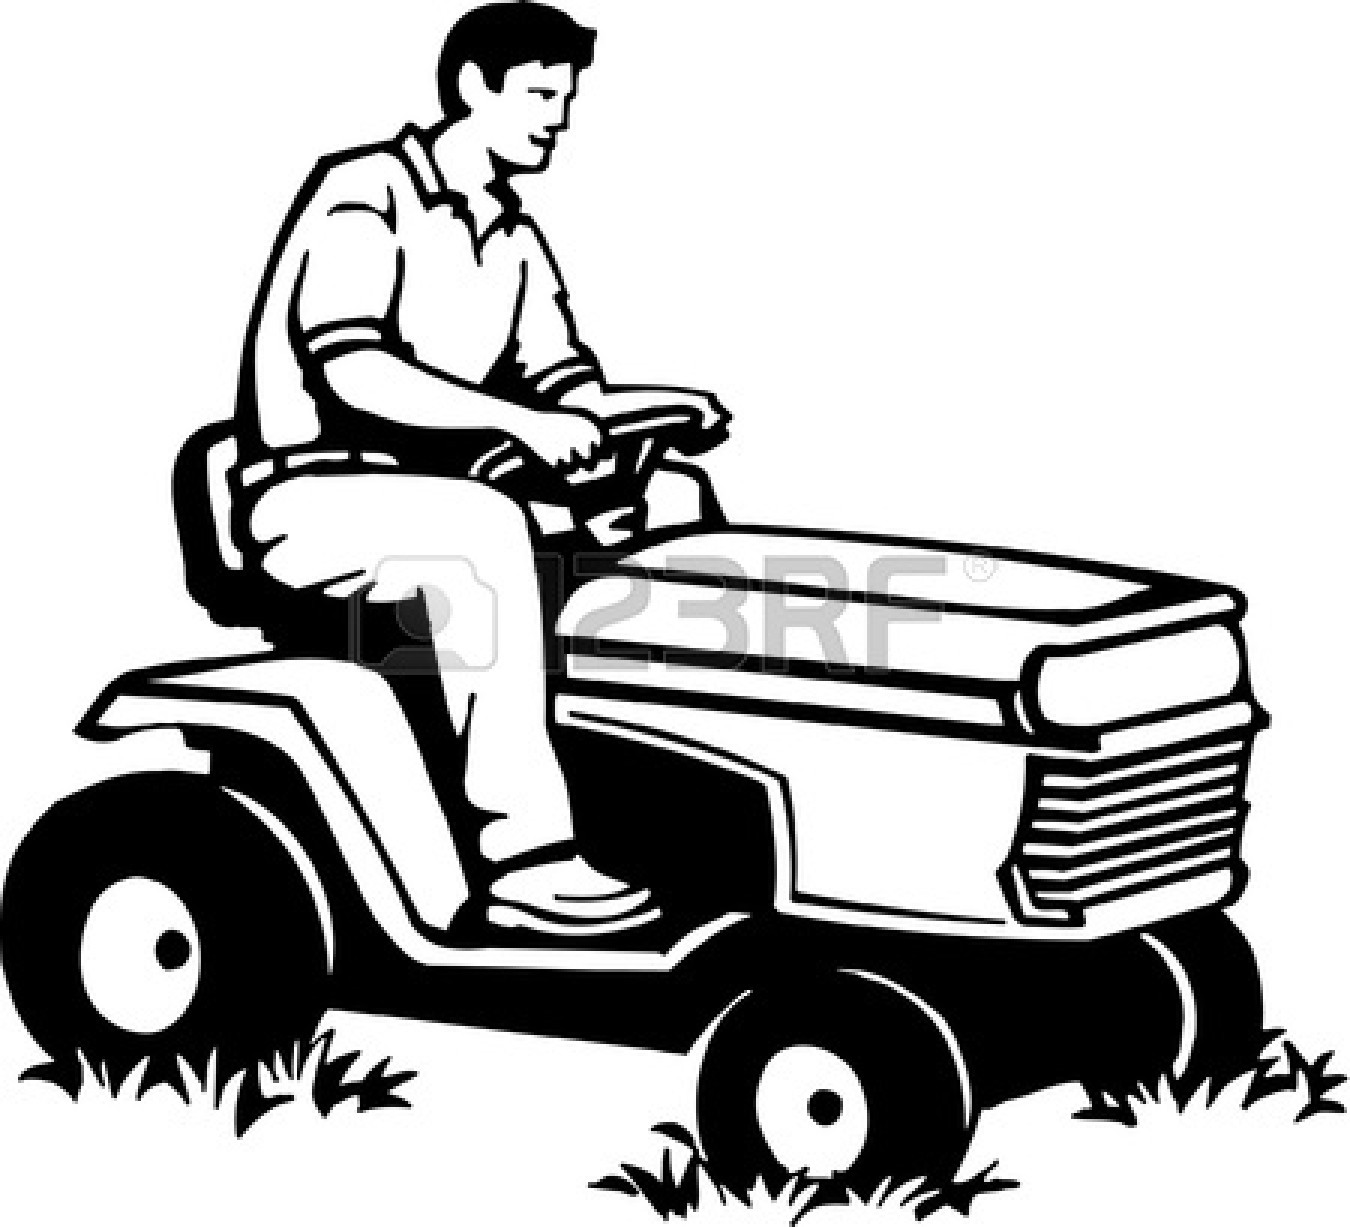 1350x1227 Lawn Mower Pictures Clip Art 17130 And Arts Lawn Mower